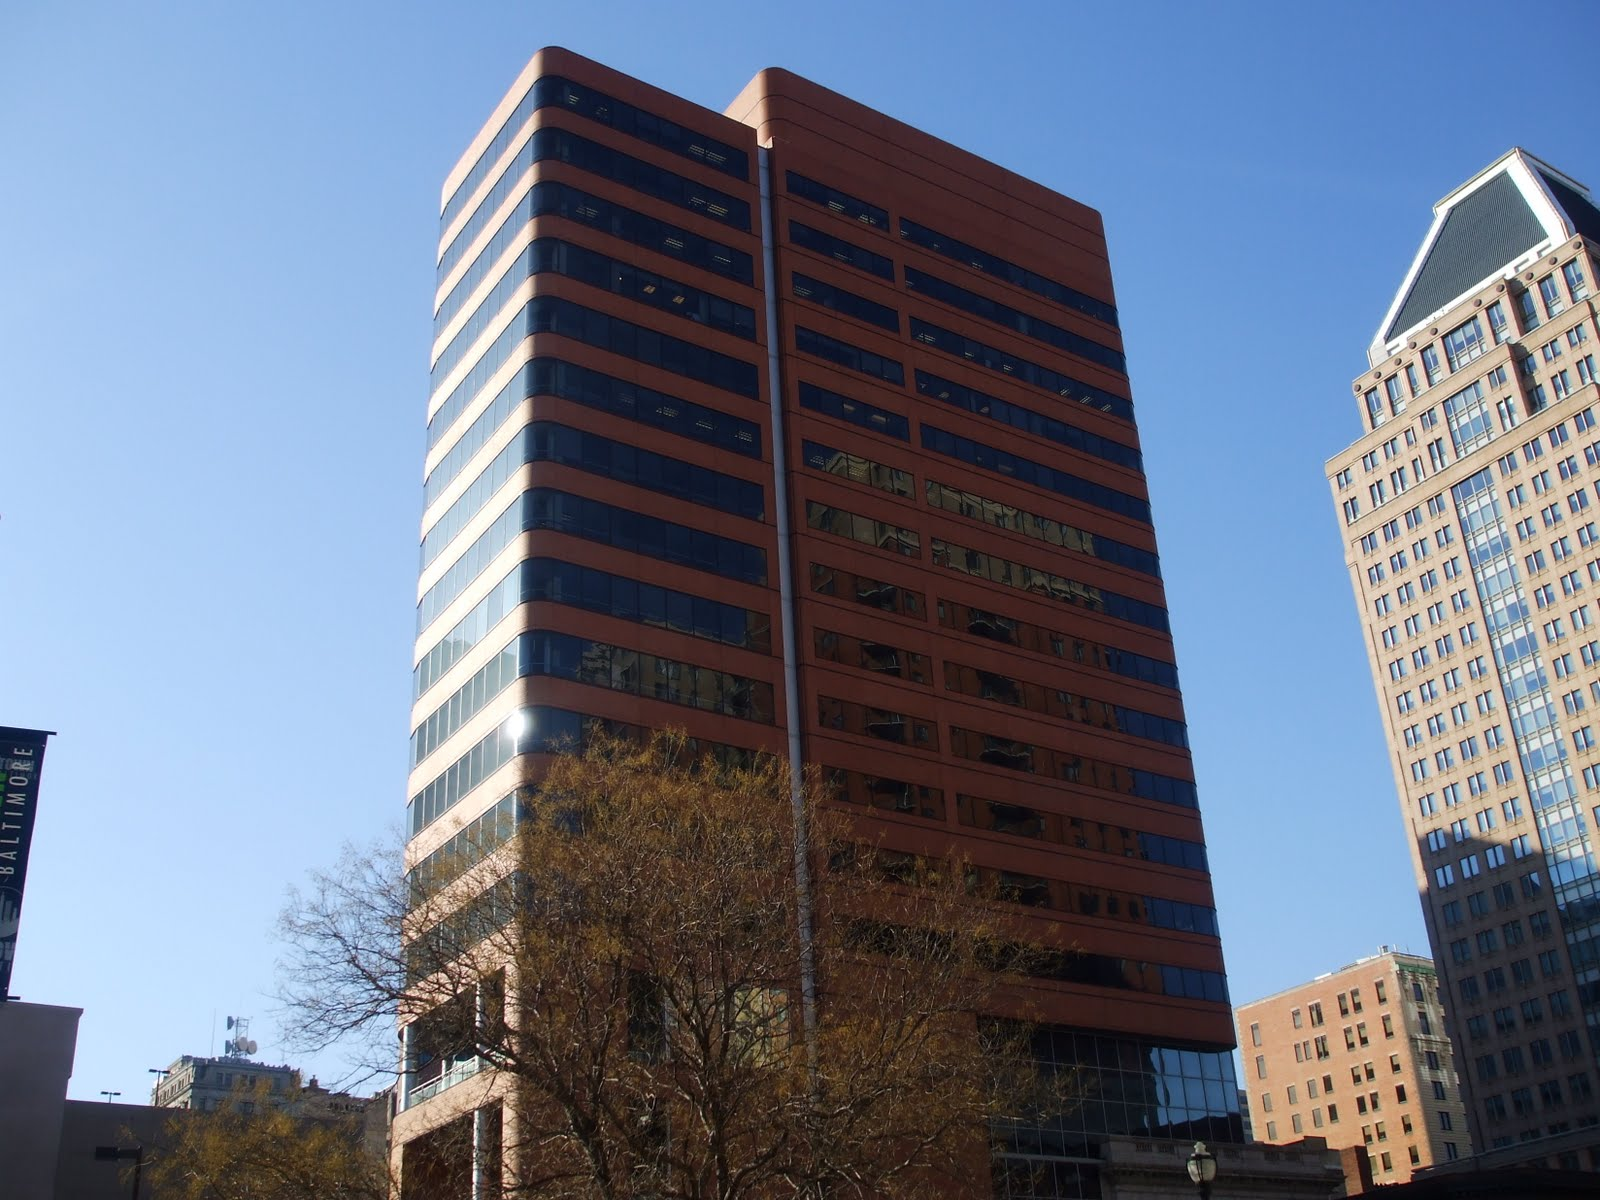 Exelon baltimore headquarters